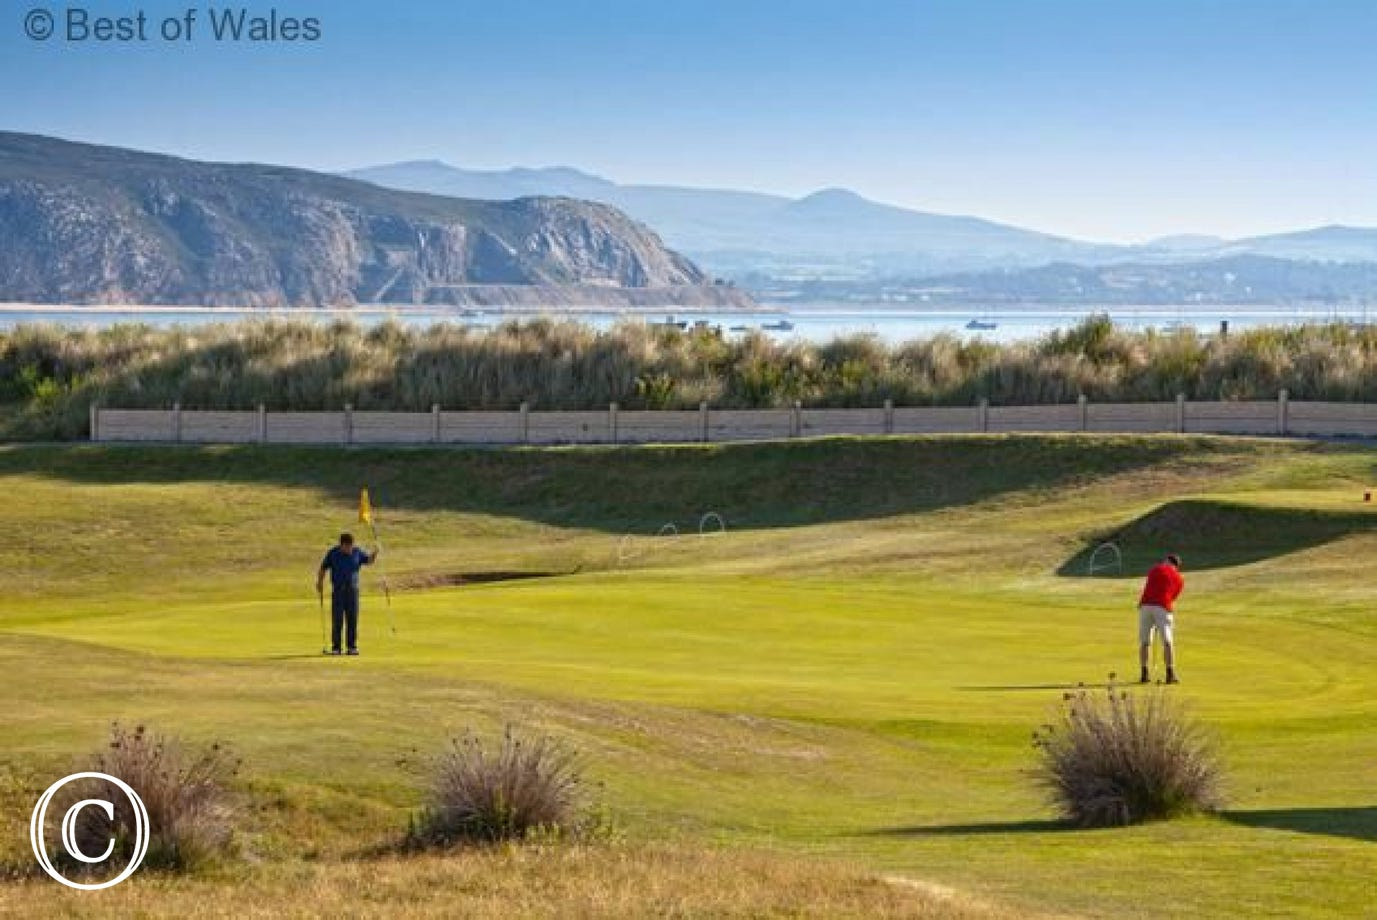 Numerous golf courses within 10 miles, including Abersoch & Pwllheli